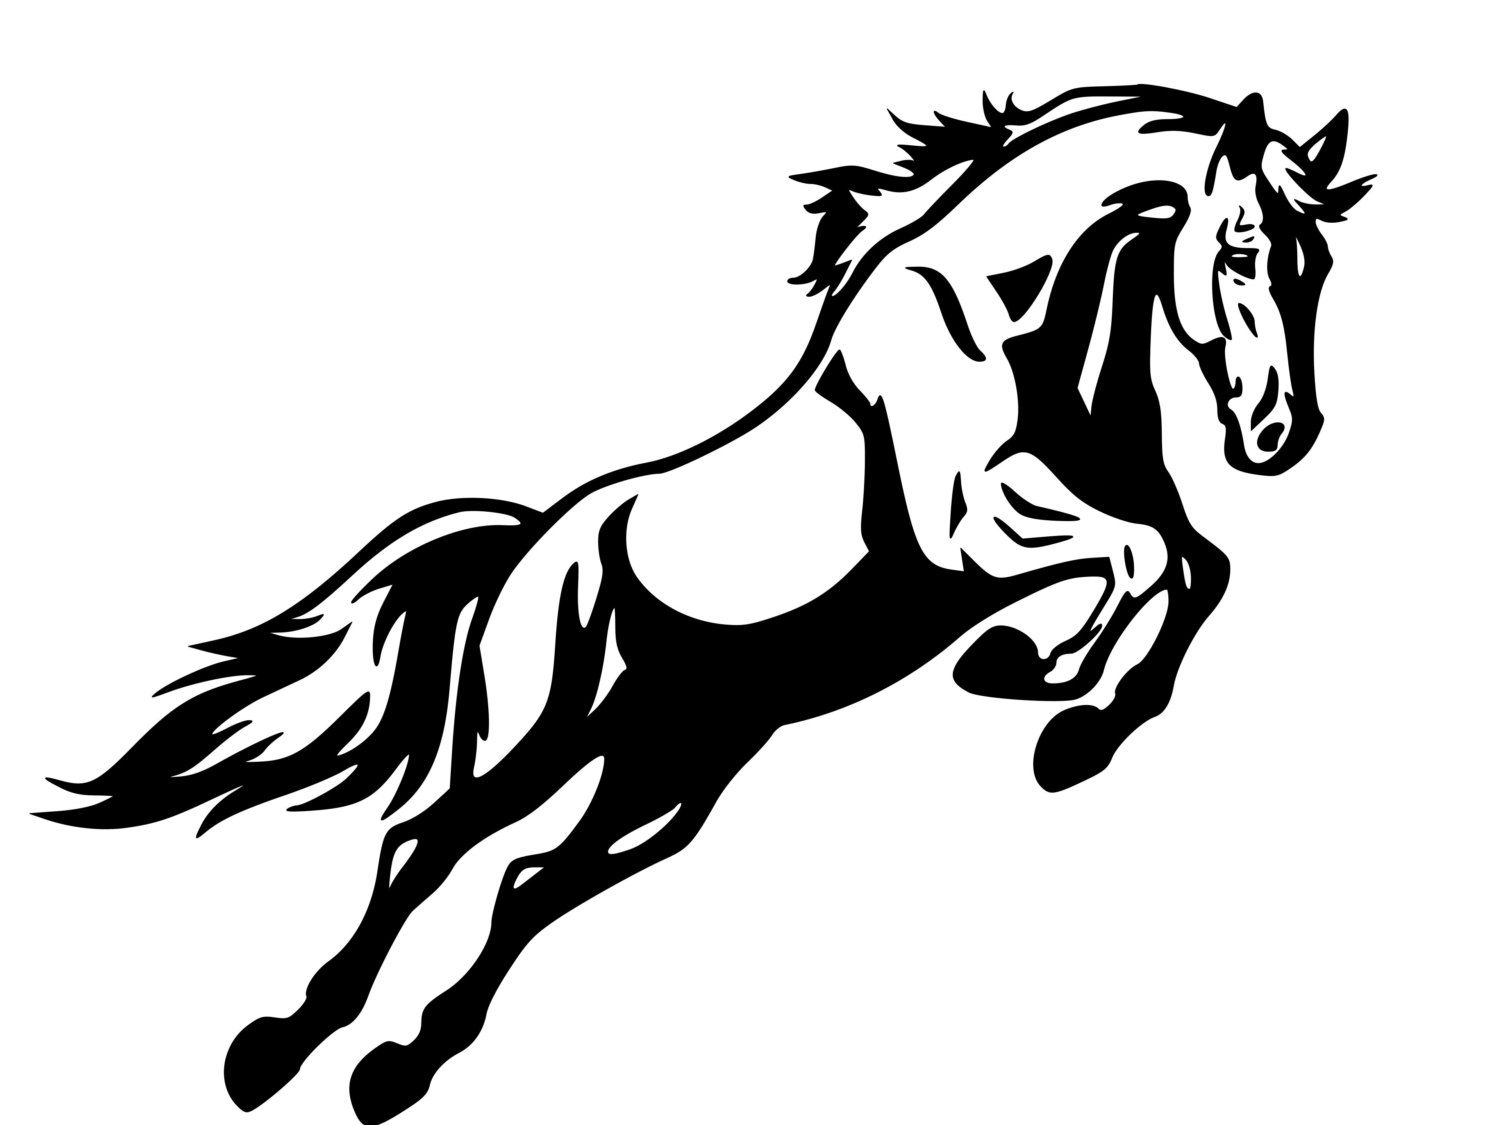 horse clipart silhouette - Google Search